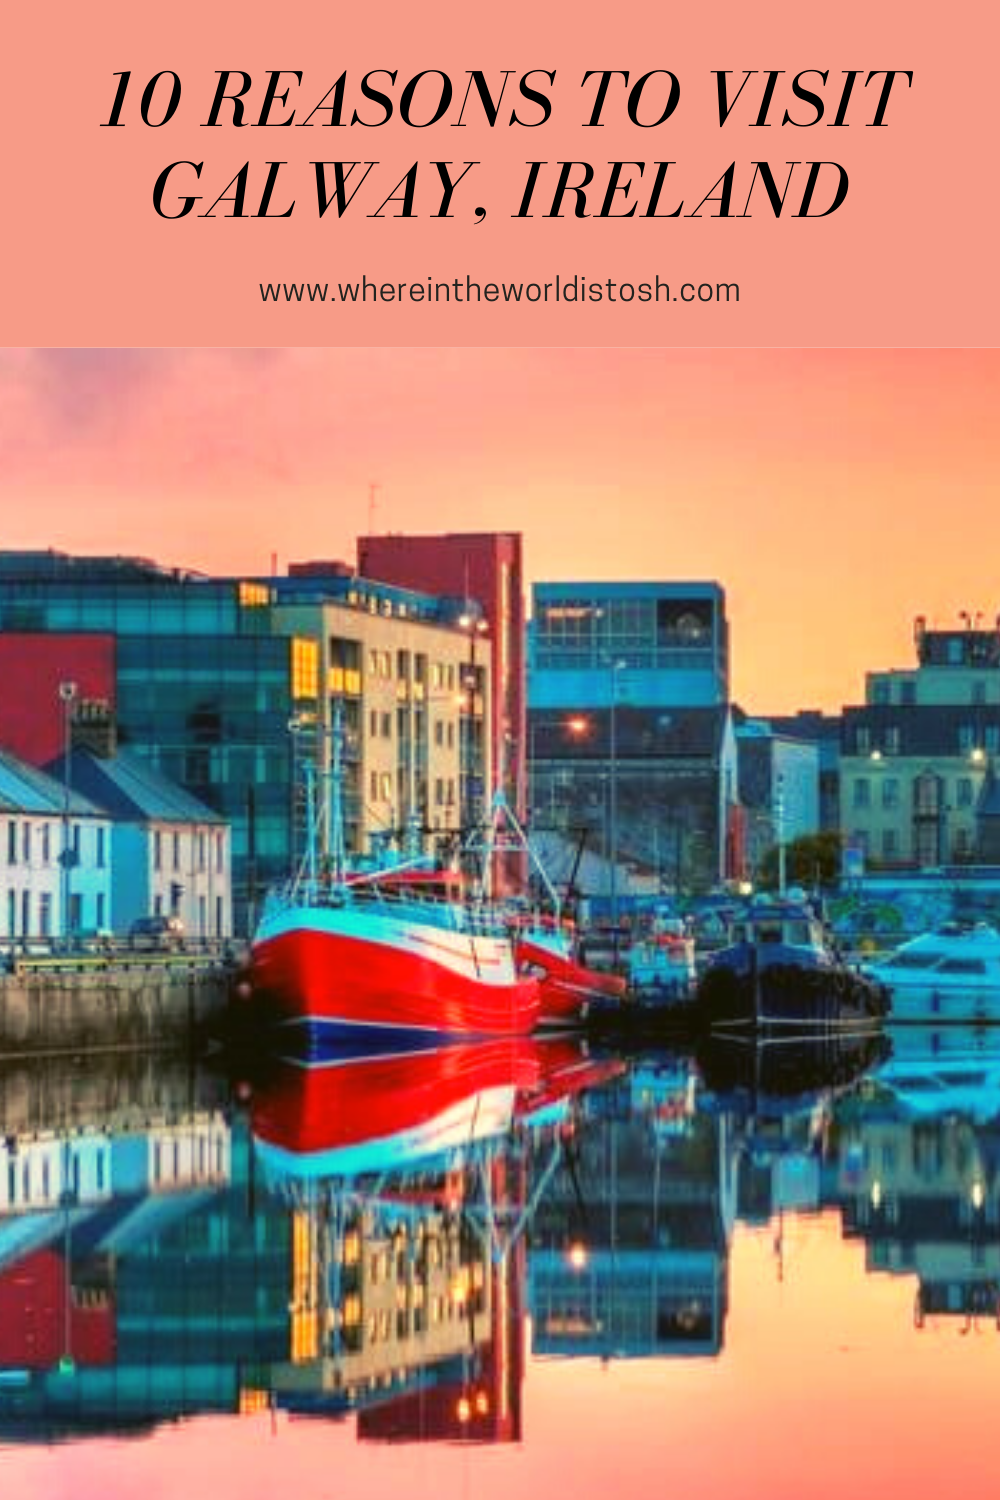 10 Reasons To Visit Galway, Ireland